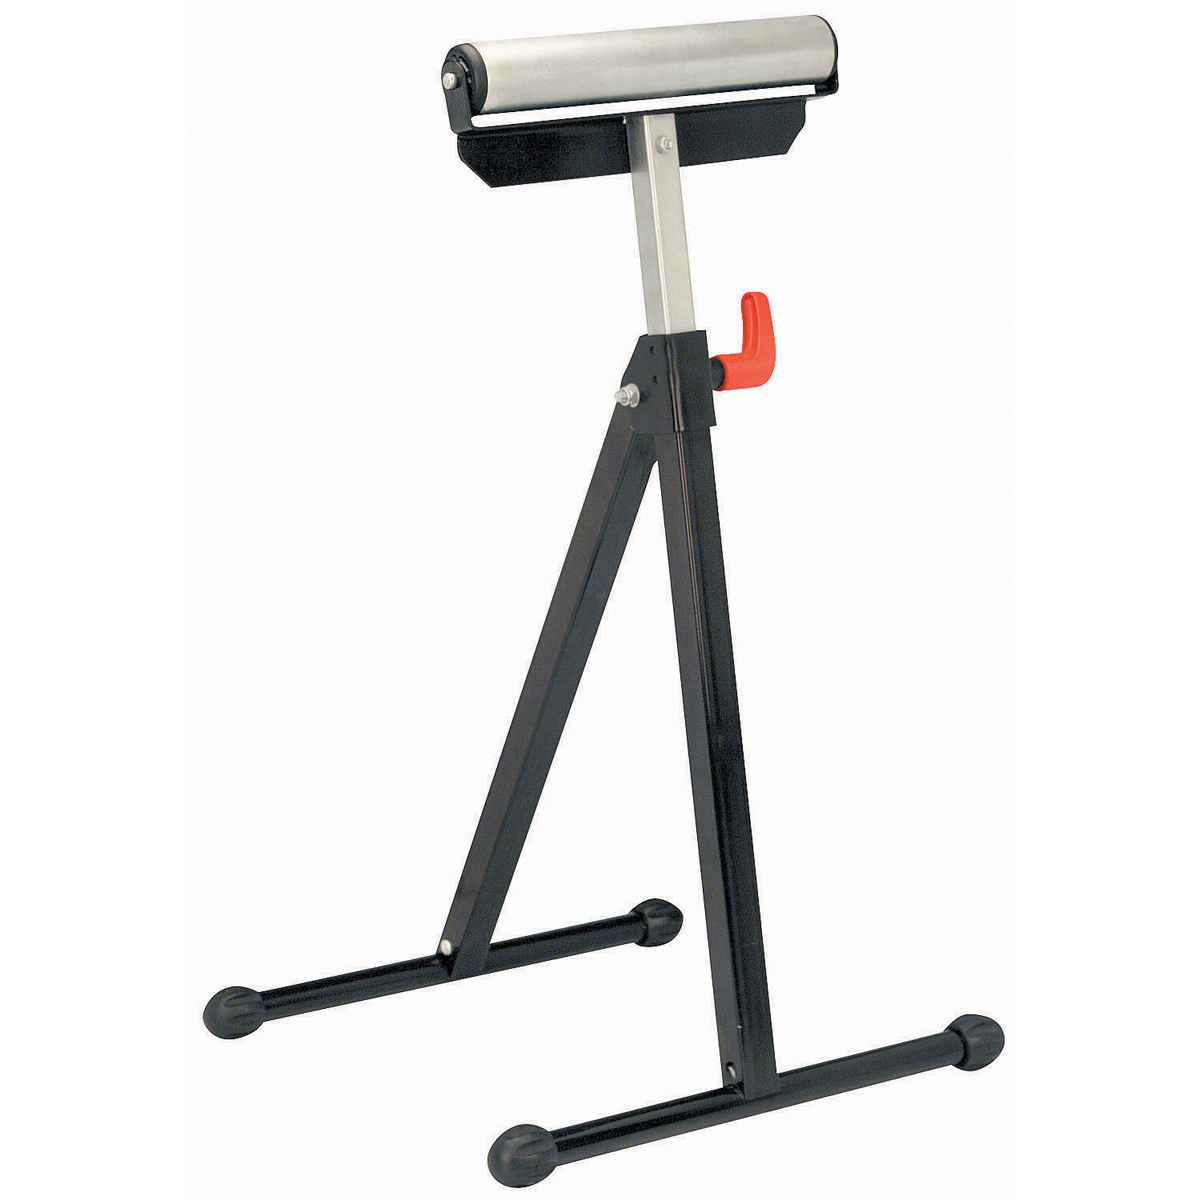 132 Lbs Capacity Roller Stand